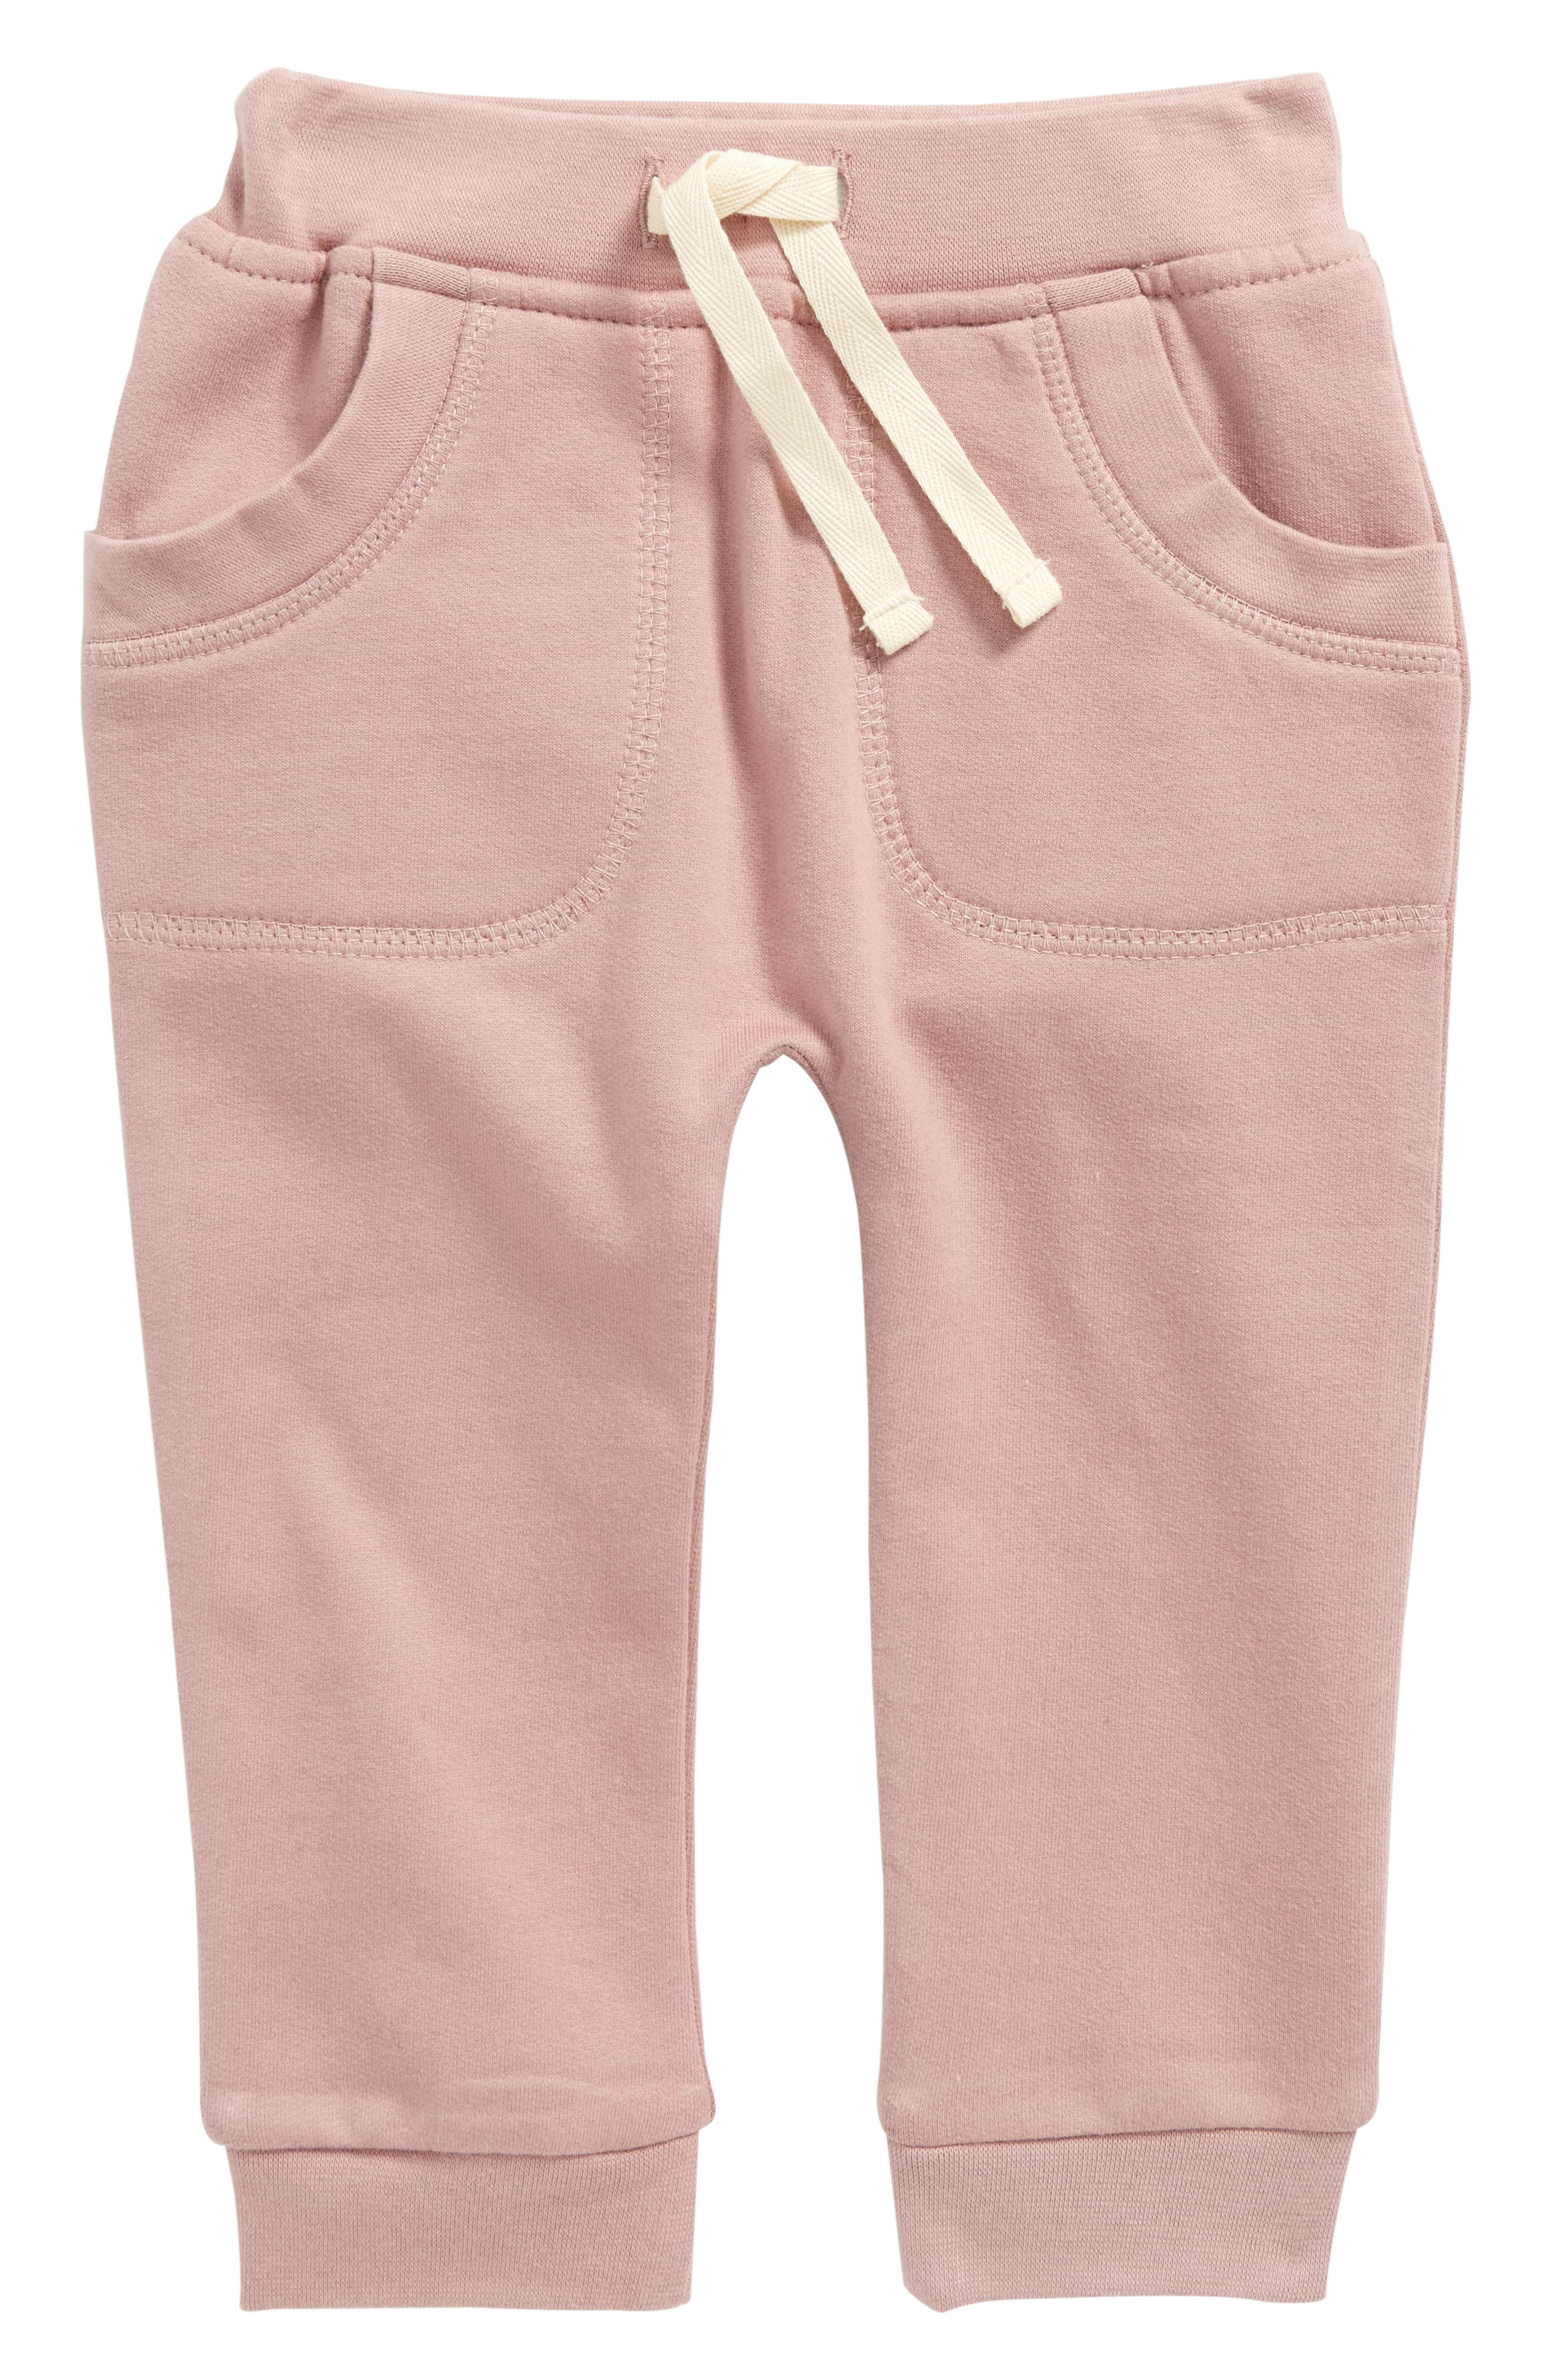 Alternate Image 1 Selected - City Mouse Organic Cotton Jogger Pants (Baby Girls)